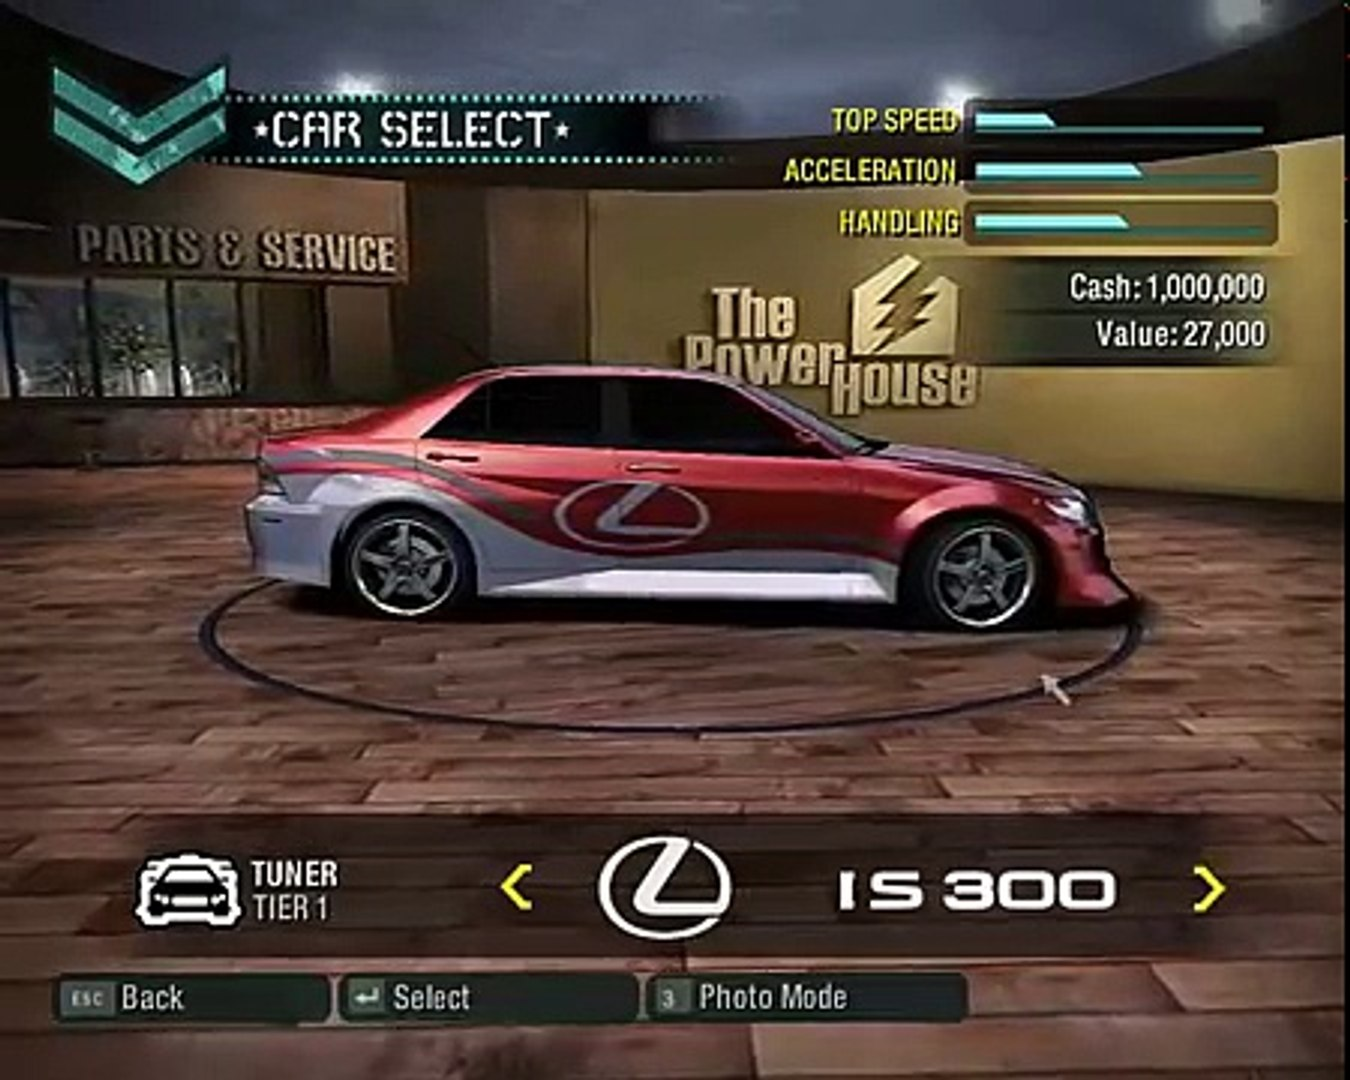 Nfs Carbon Trainer Unlock All Cars - NYC